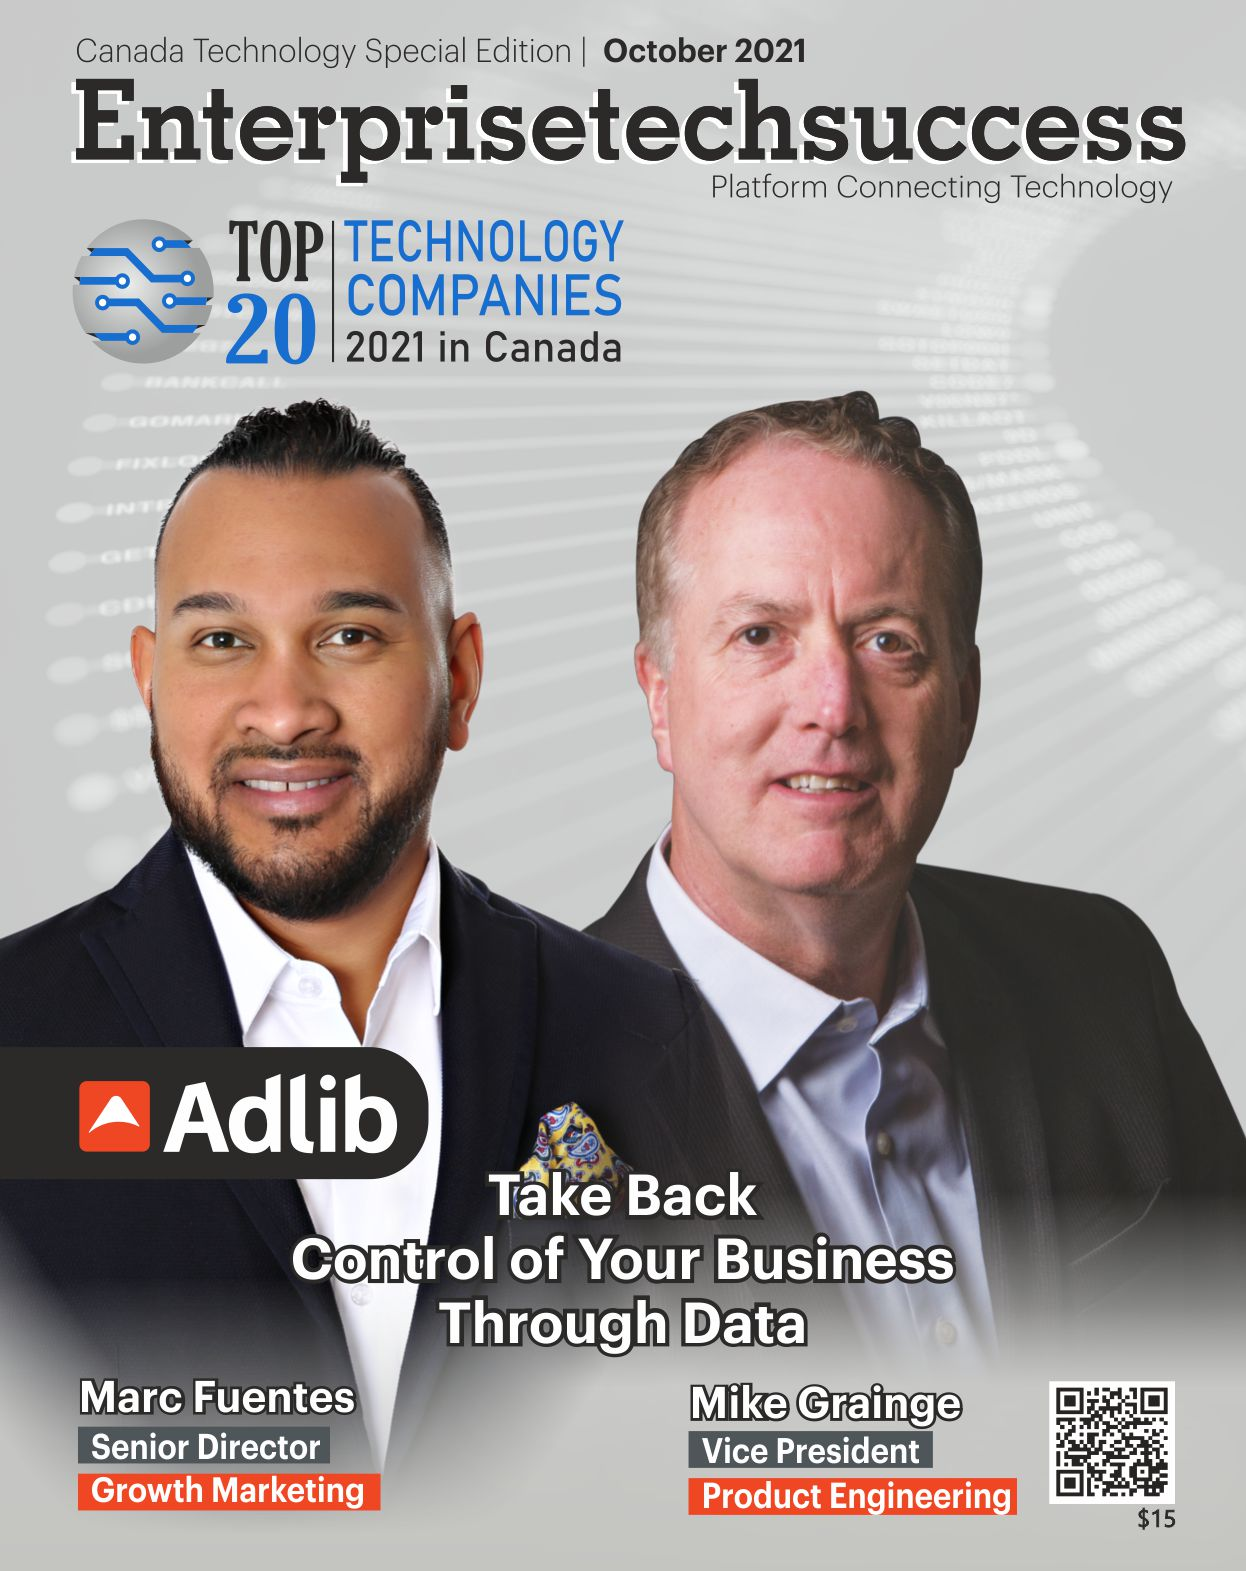 Top 20 Technology Companies 2021 in Canada